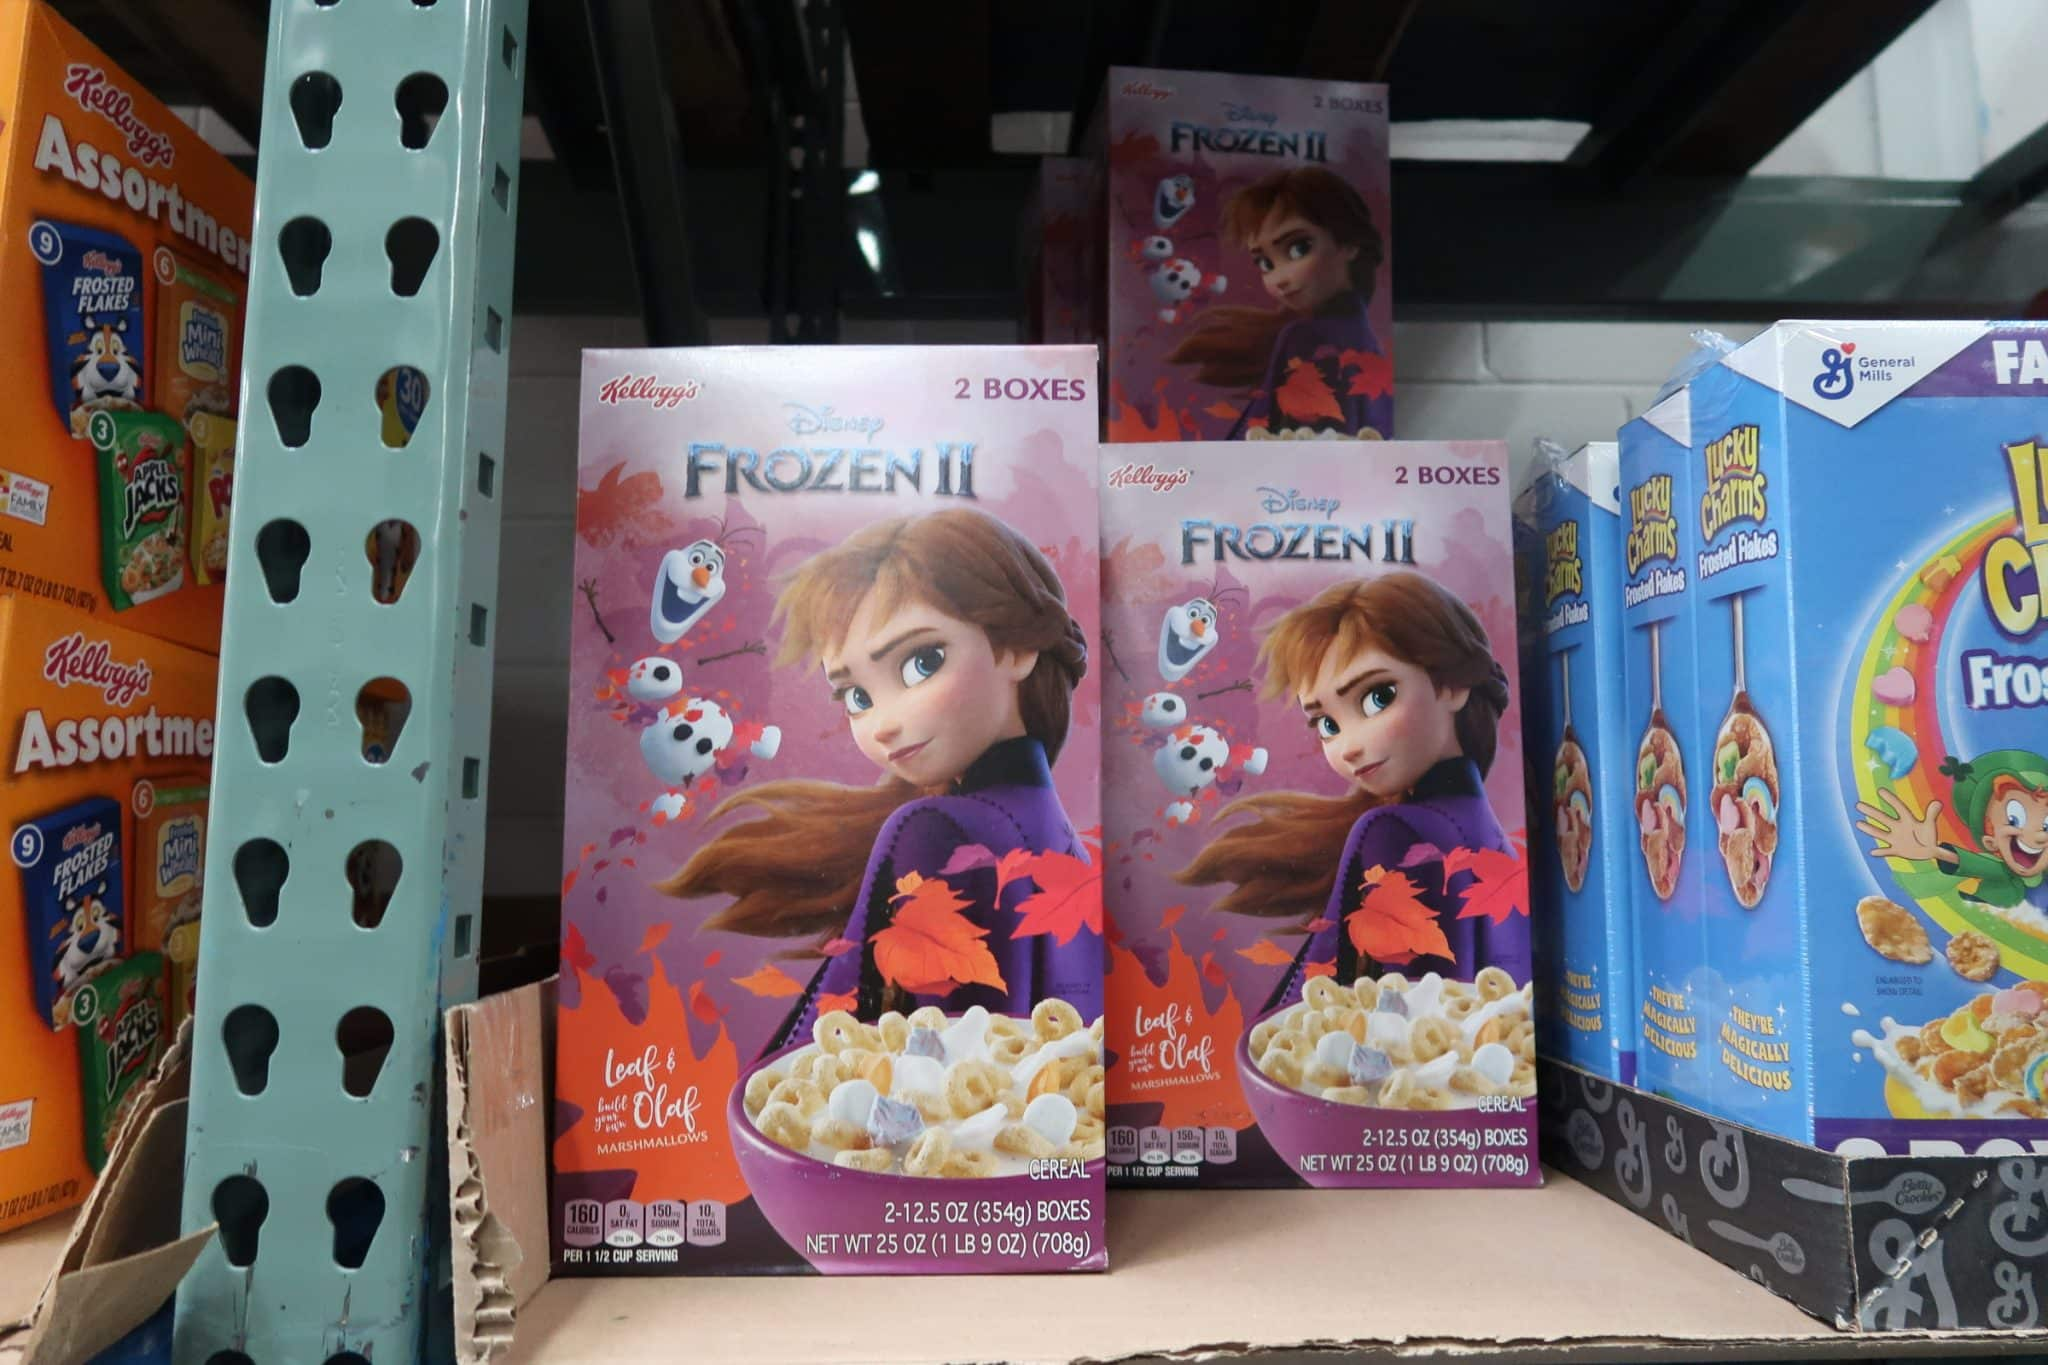 Frozen 2 Cereal ONLY $2.49 after Coupons